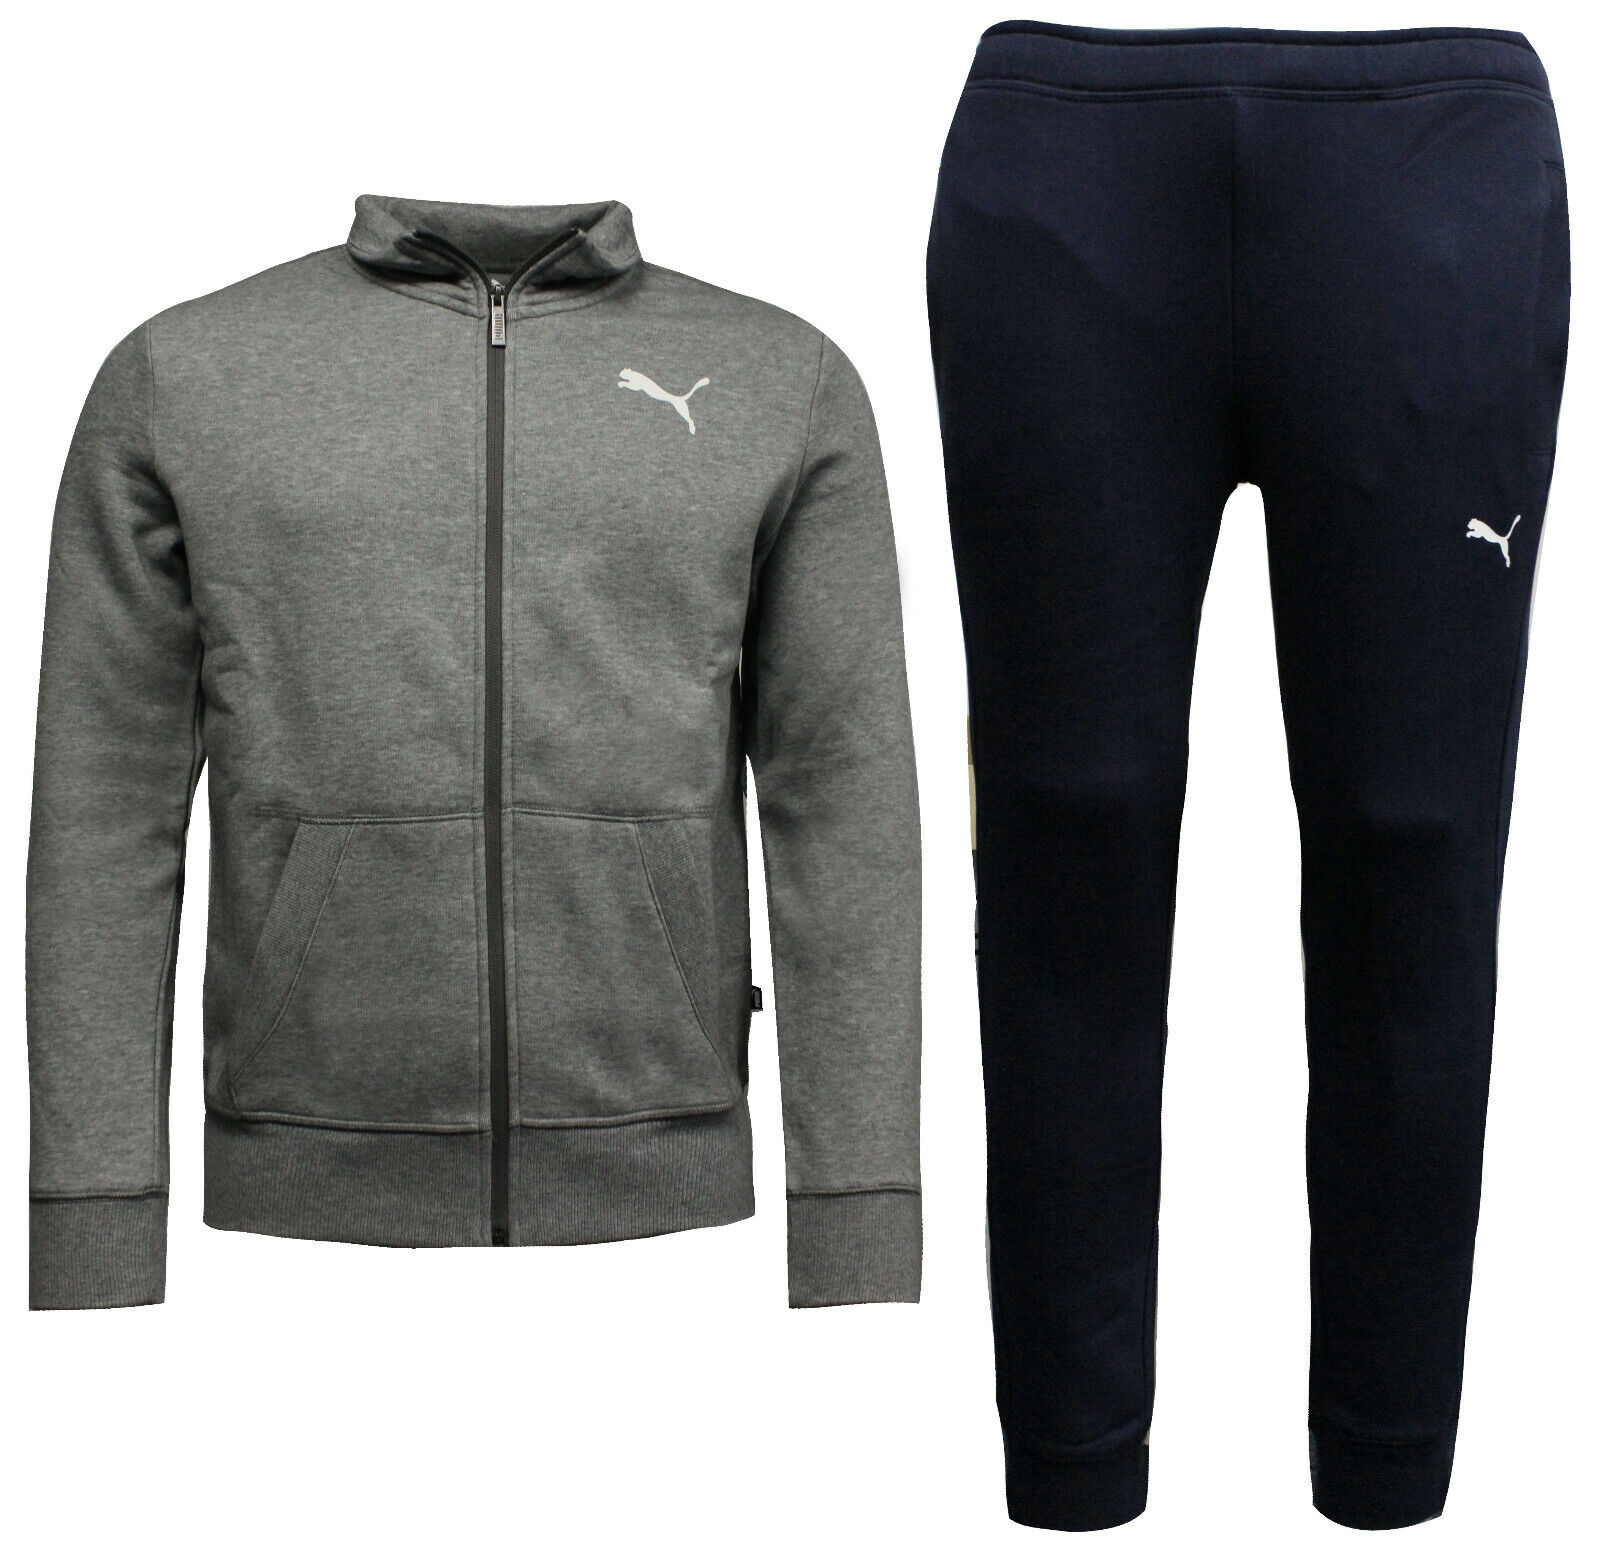 663054961 Puma Mens Style Sweat Suit Cl Tracksuit Top Joggers Grey Navy 851555 ...